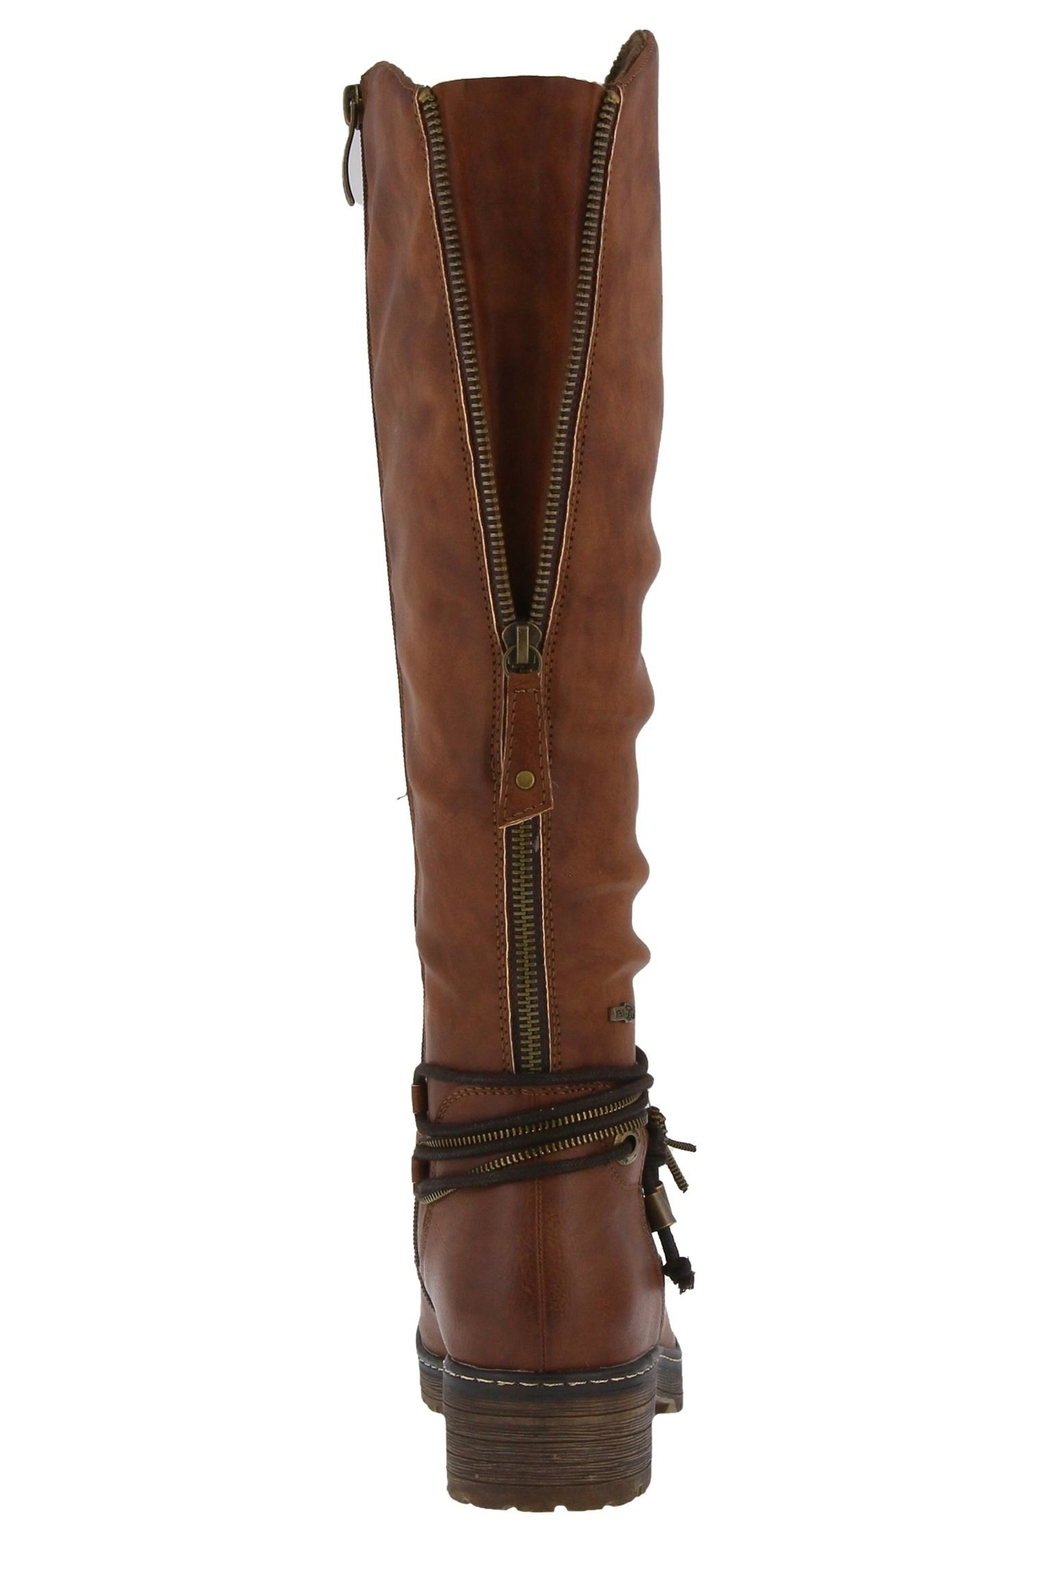 Spring Footwear Double Zipper Boot - Front Full Image